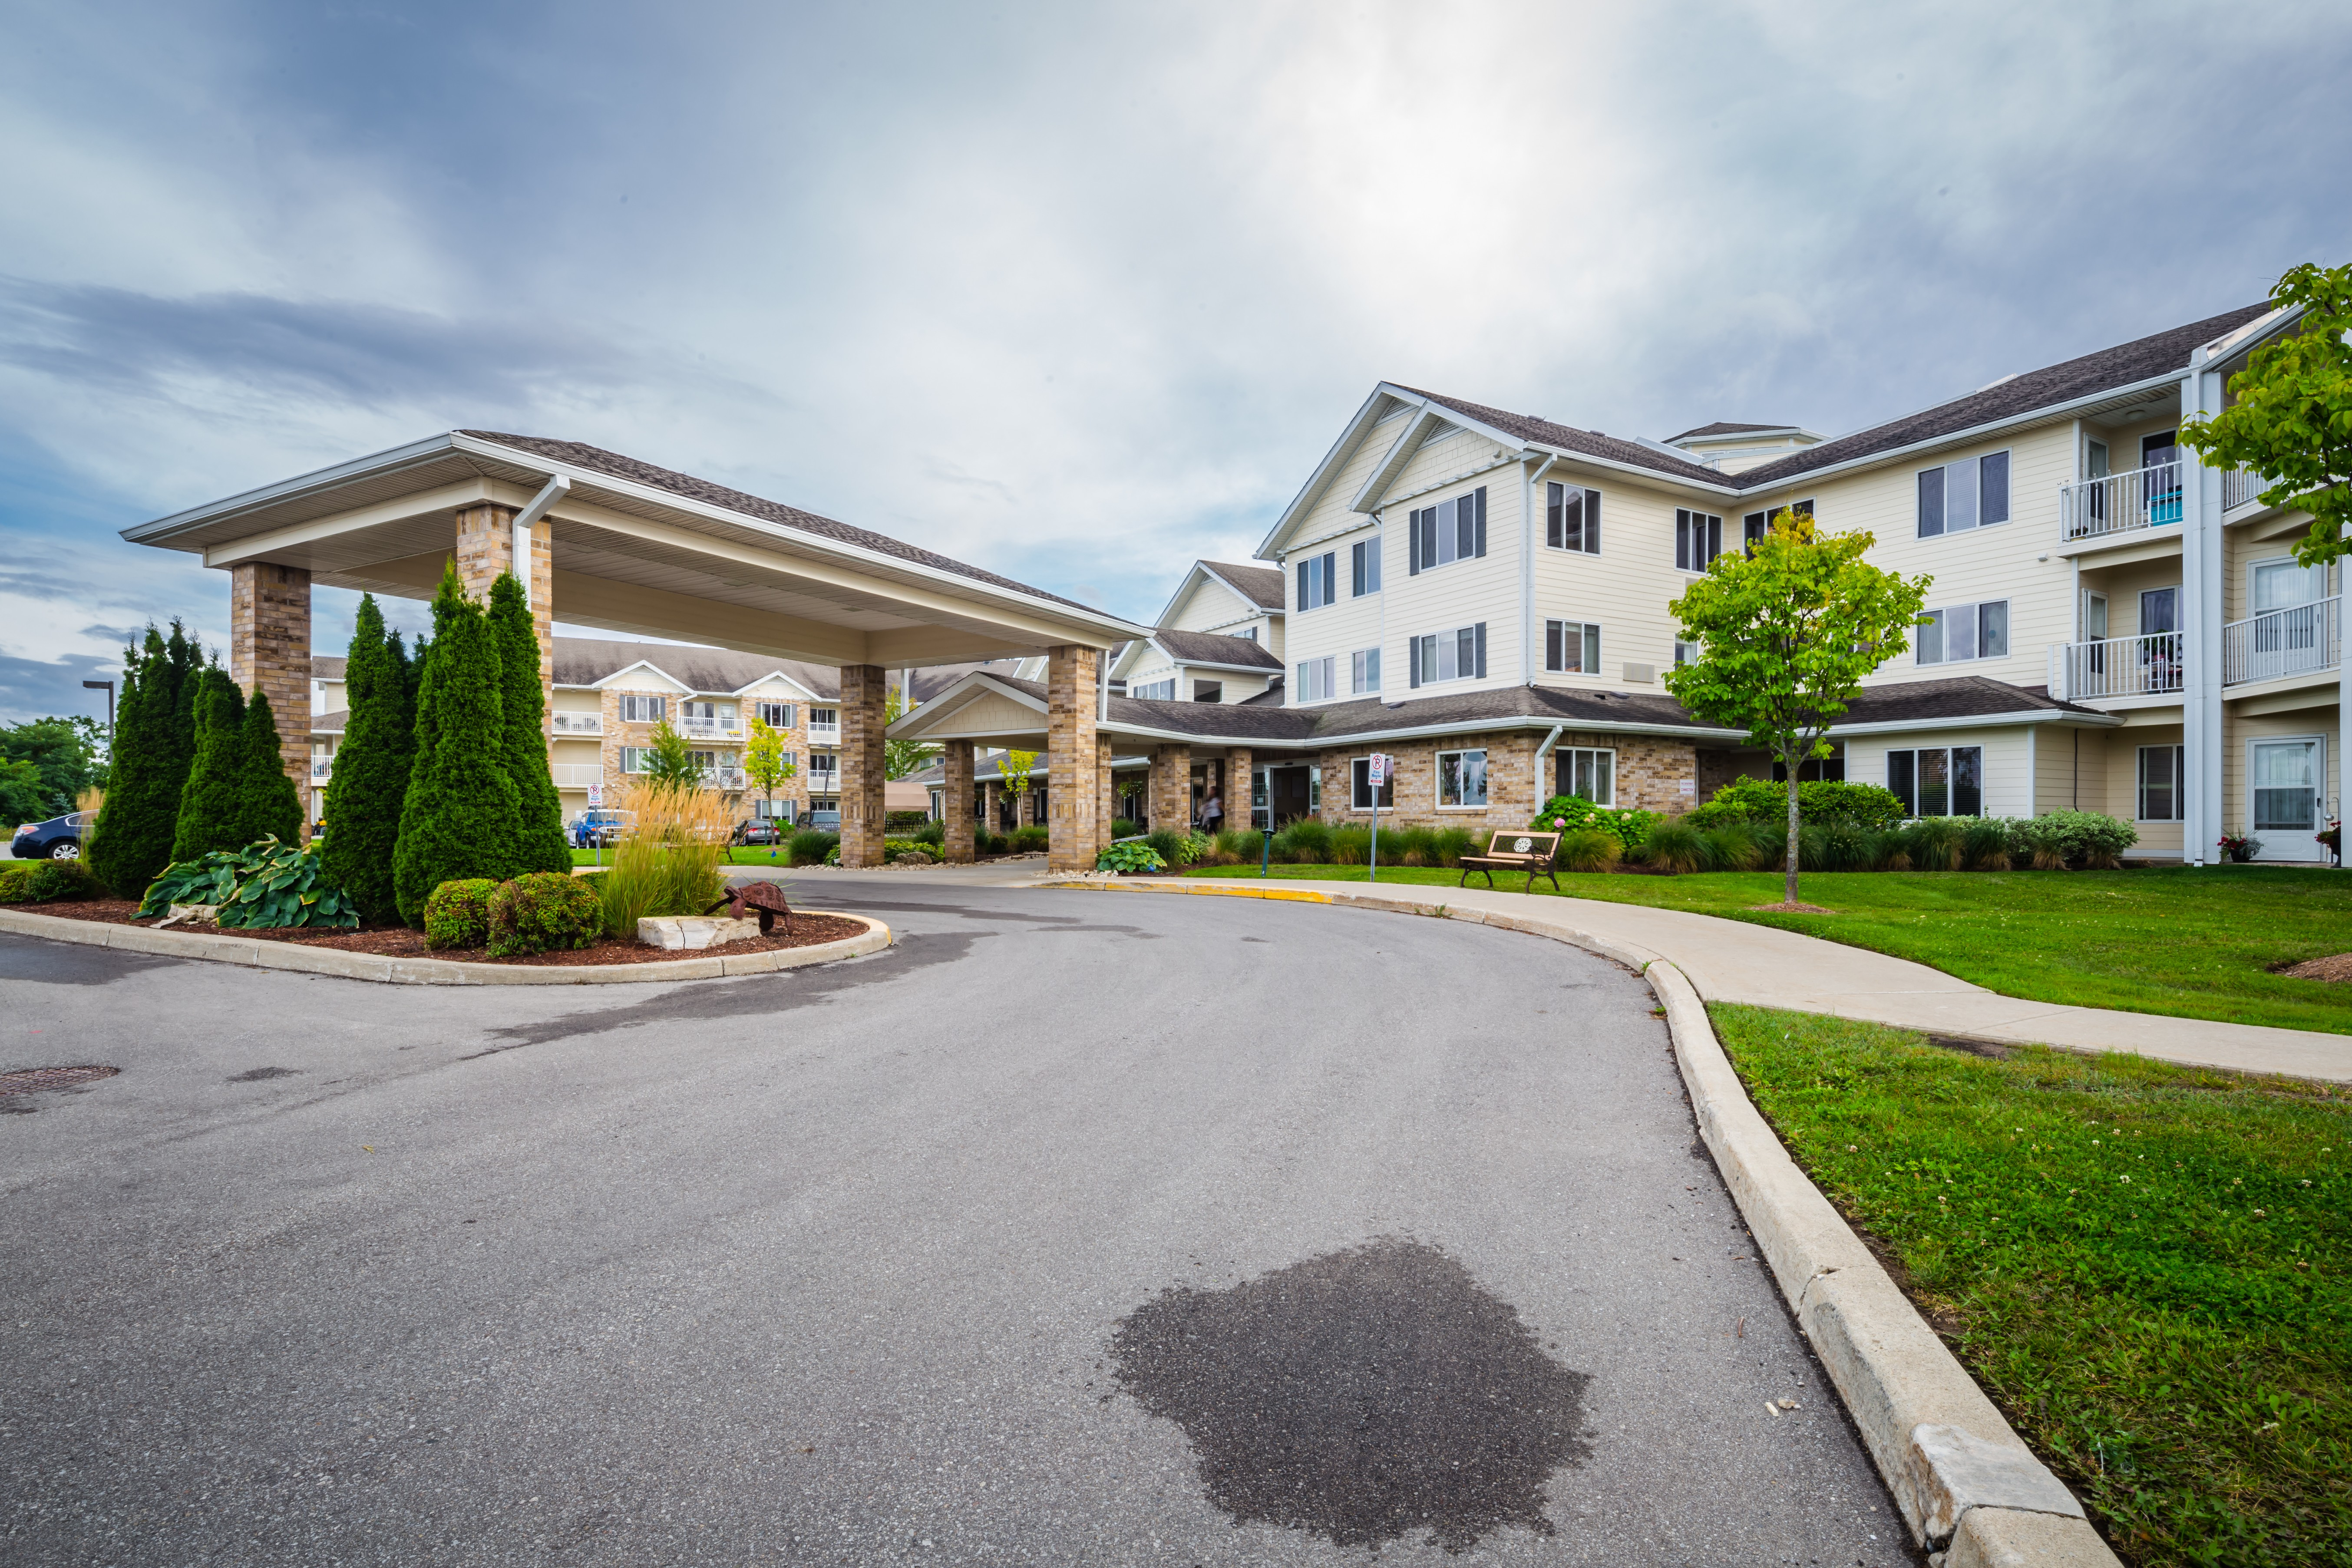 The Village of Laurelwood at 619 Wild Ginger Ave, Waterloo 1